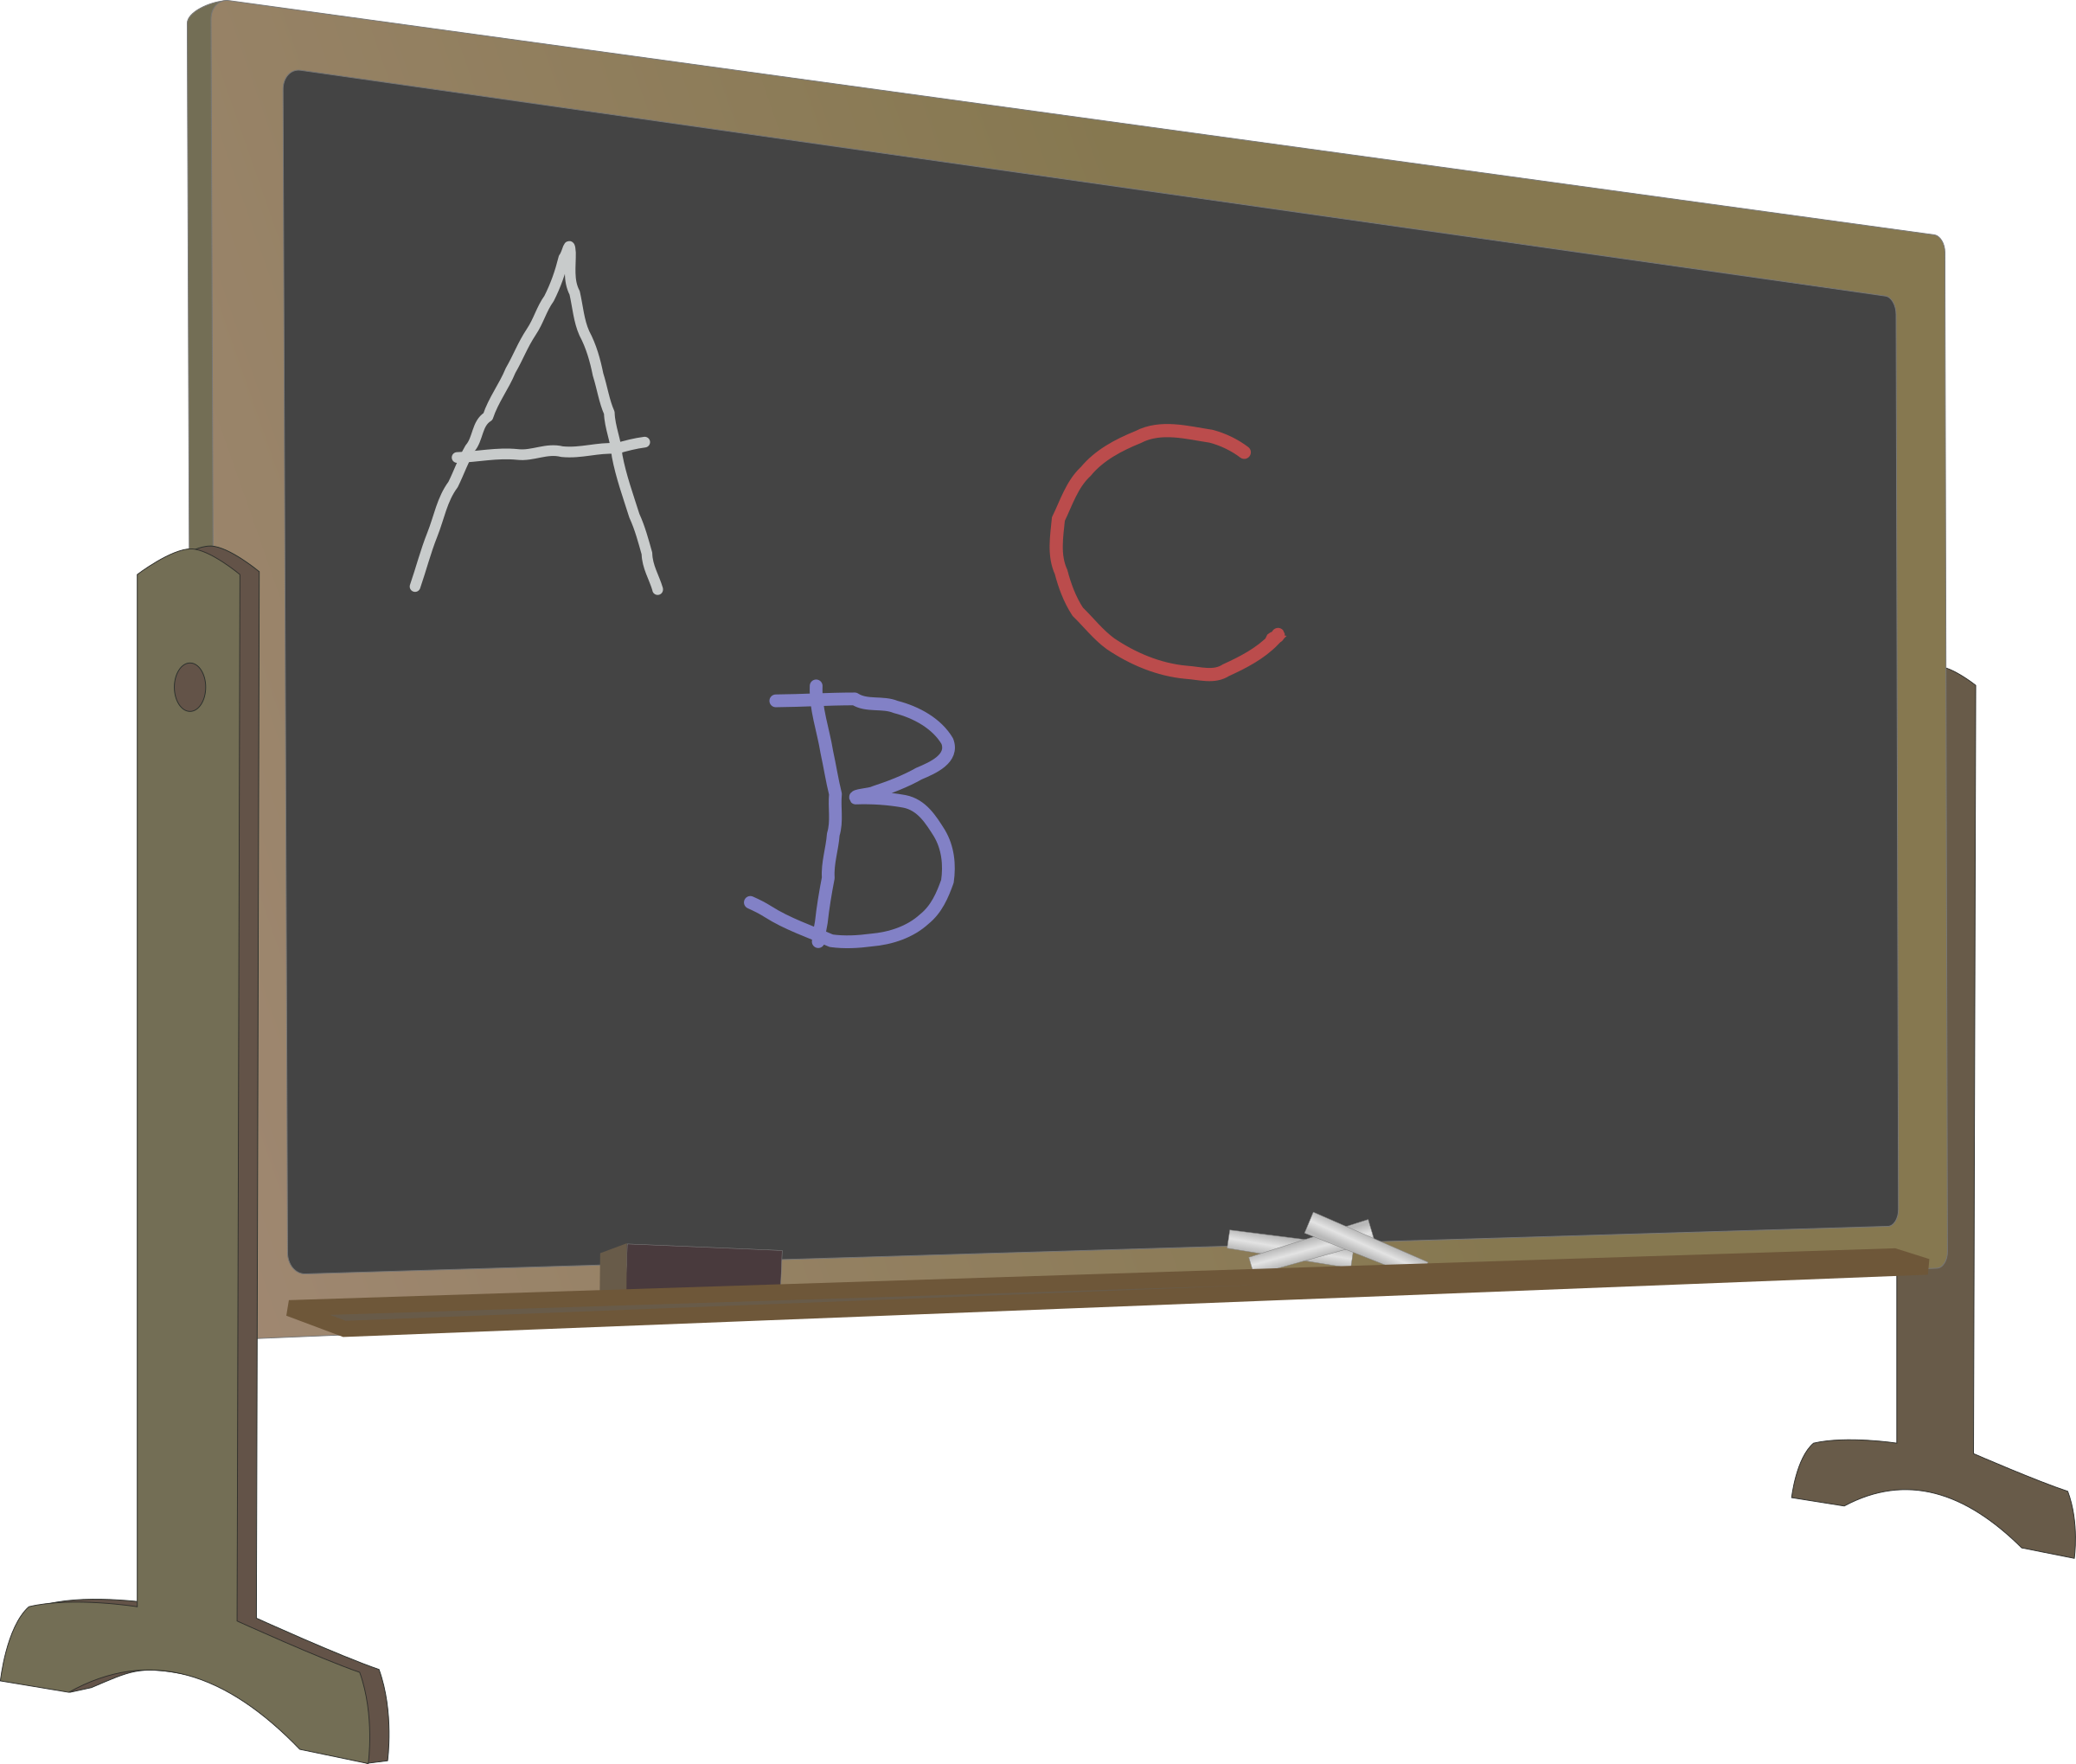 Chalkboard images clip art png black and white download Blackboard Clip art - Chalkboard 2400*2039 transprent Png Free ... png black and white download